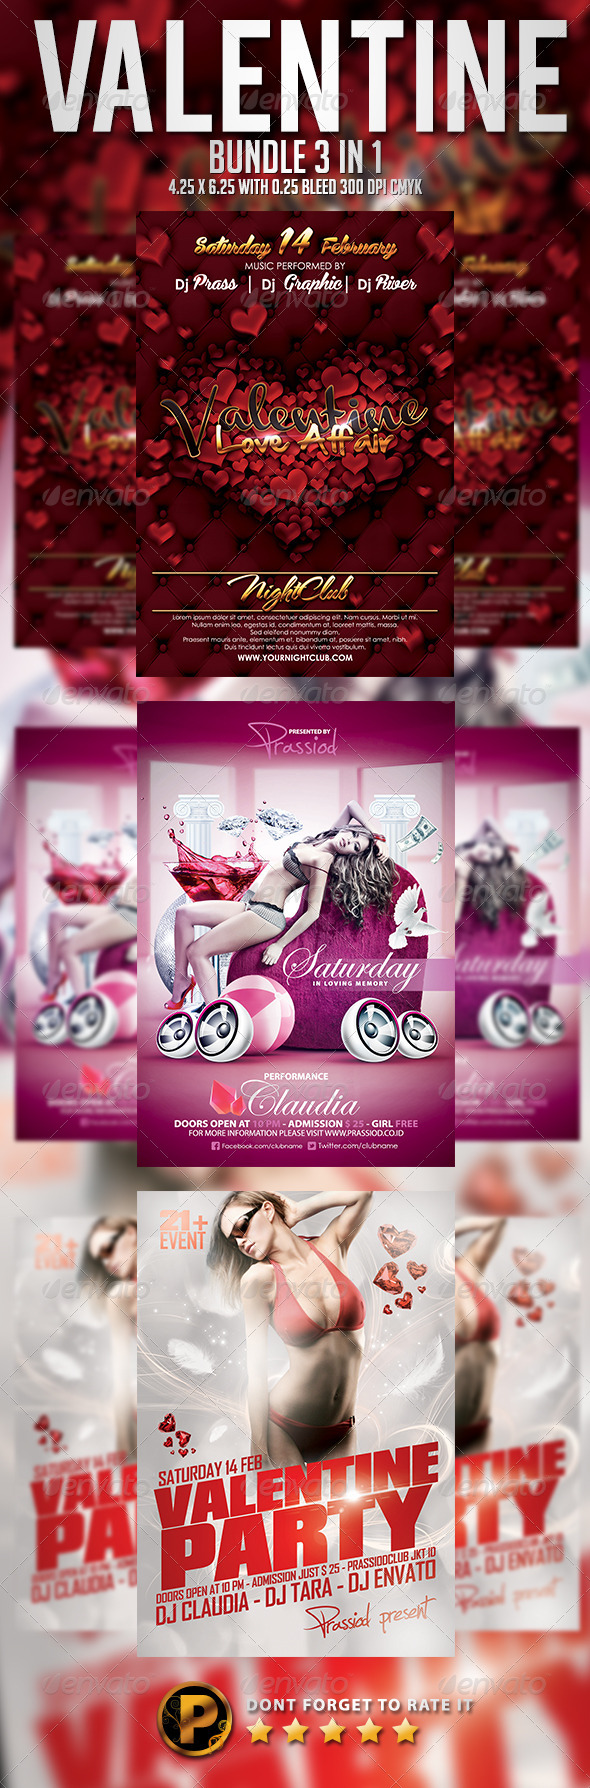 Valentine Flyer Template - Bundle 3 In 1 - Clubs & Parties Events